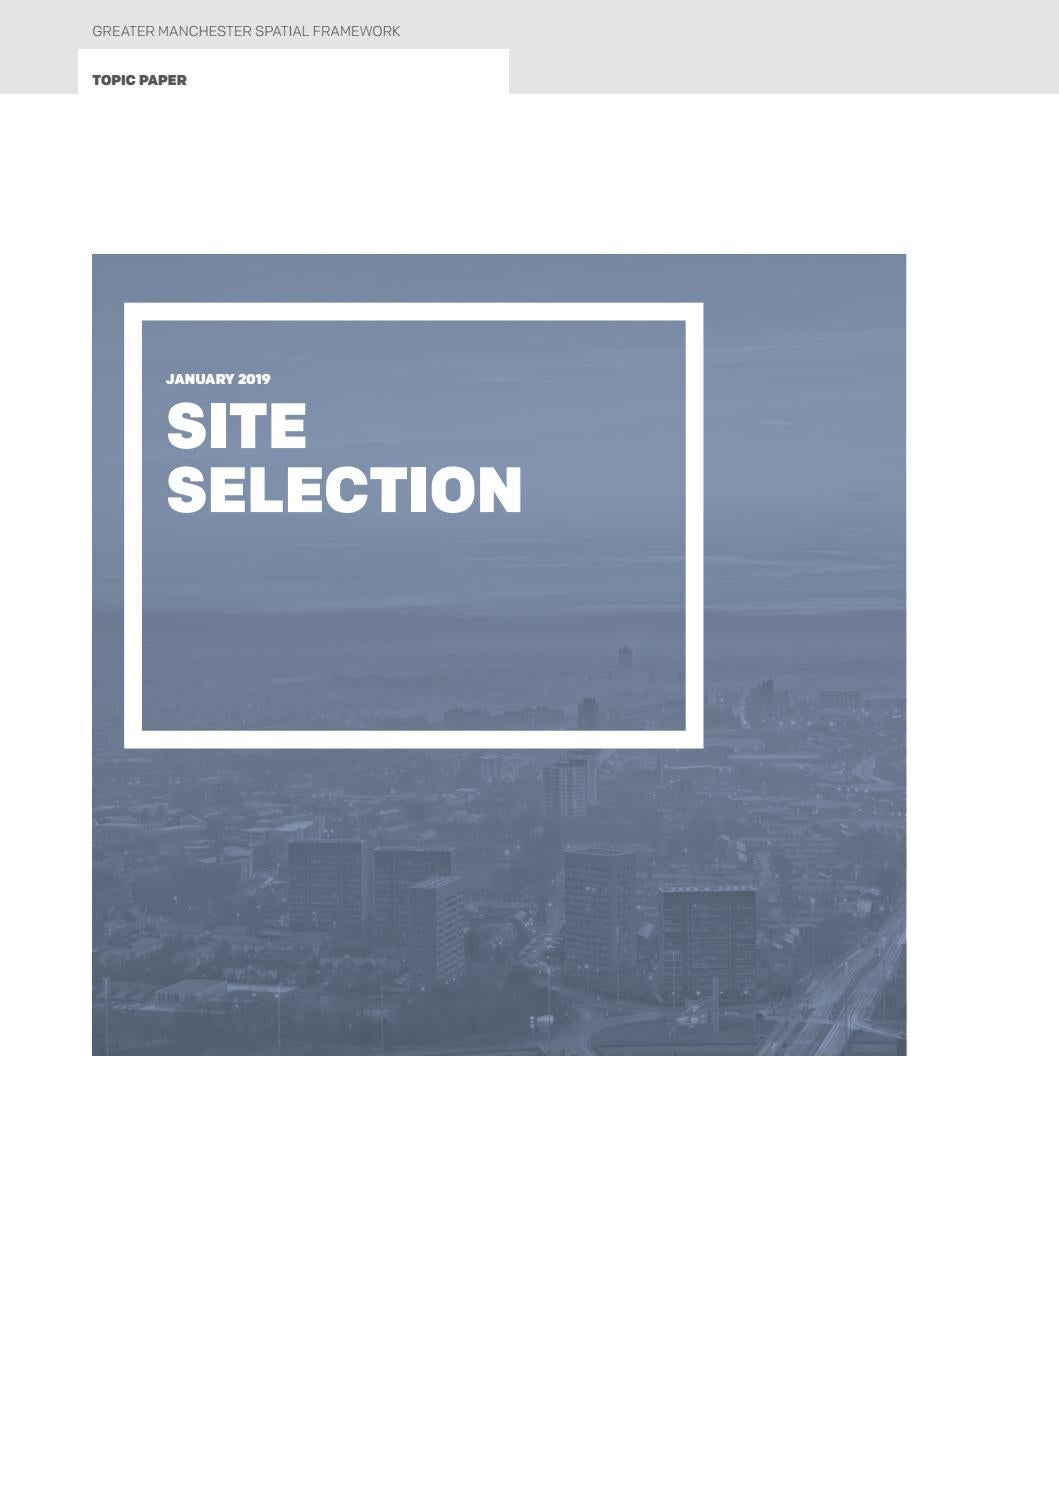 Greater Manchester Spatial Framework Site Selection (Topic Paper) by